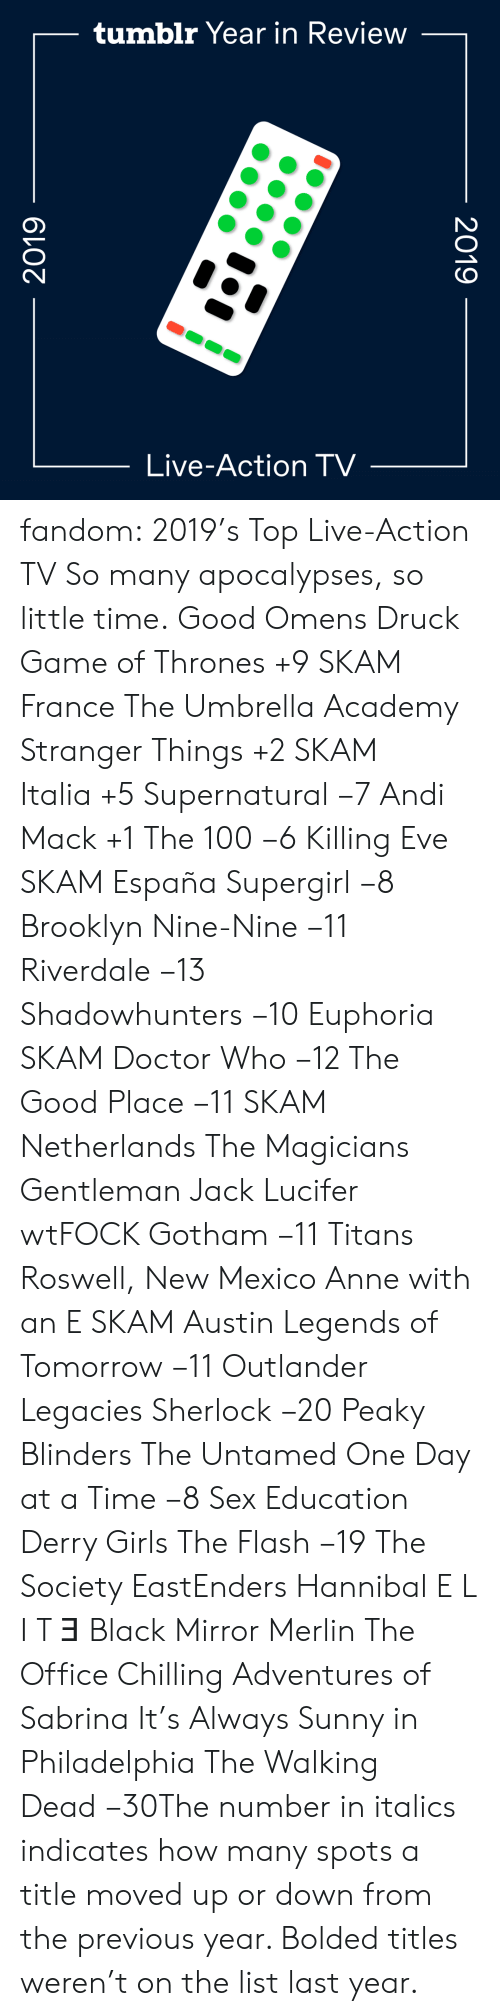 l&i: tumblr Year in Review  Live-Action TV-  2019  2019 fandom:  2019's Top Live-Action TV  So many apocalypses, so little time.  Good Omens  Druck  Game of Thrones +9  SKAM France  The Umbrella Academy  Stranger Things +2  SKAM Italia +5  Supernatural −7  Andi Mack +1  The 100 −6  Killing Eve   SKAM España  Supergirl −8  Brooklyn Nine-Nine −11  Riverdale −13  Shadowhunters −10  Euphoria  SKAM  Doctor Who −12  The Good Place −11  SKAM Netherlands  The Magicians  Gentleman Jack  Lucifer  wtFOCK  Gotham −11  Titans  Roswell, New Mexico  Anne with an E  SKAM Austin  Legends of Tomorrow −11  Outlander  Legacies  Sherlock −20  Peaky Blinders  The Untamed  One Day at a Time −8  Sex Education  Derry Girls  The Flash −19  The Society  EastEnders  Hannibal  E L I T Ǝ  Black Mirror  Merlin  The Office  Chilling Adventures of Sabrina  It's Always Sunny in Philadelphia The Walking Dead −30The number in italics indicates how many spots a title moved up or down from the previous year. Bolded titles weren't on the list last year.